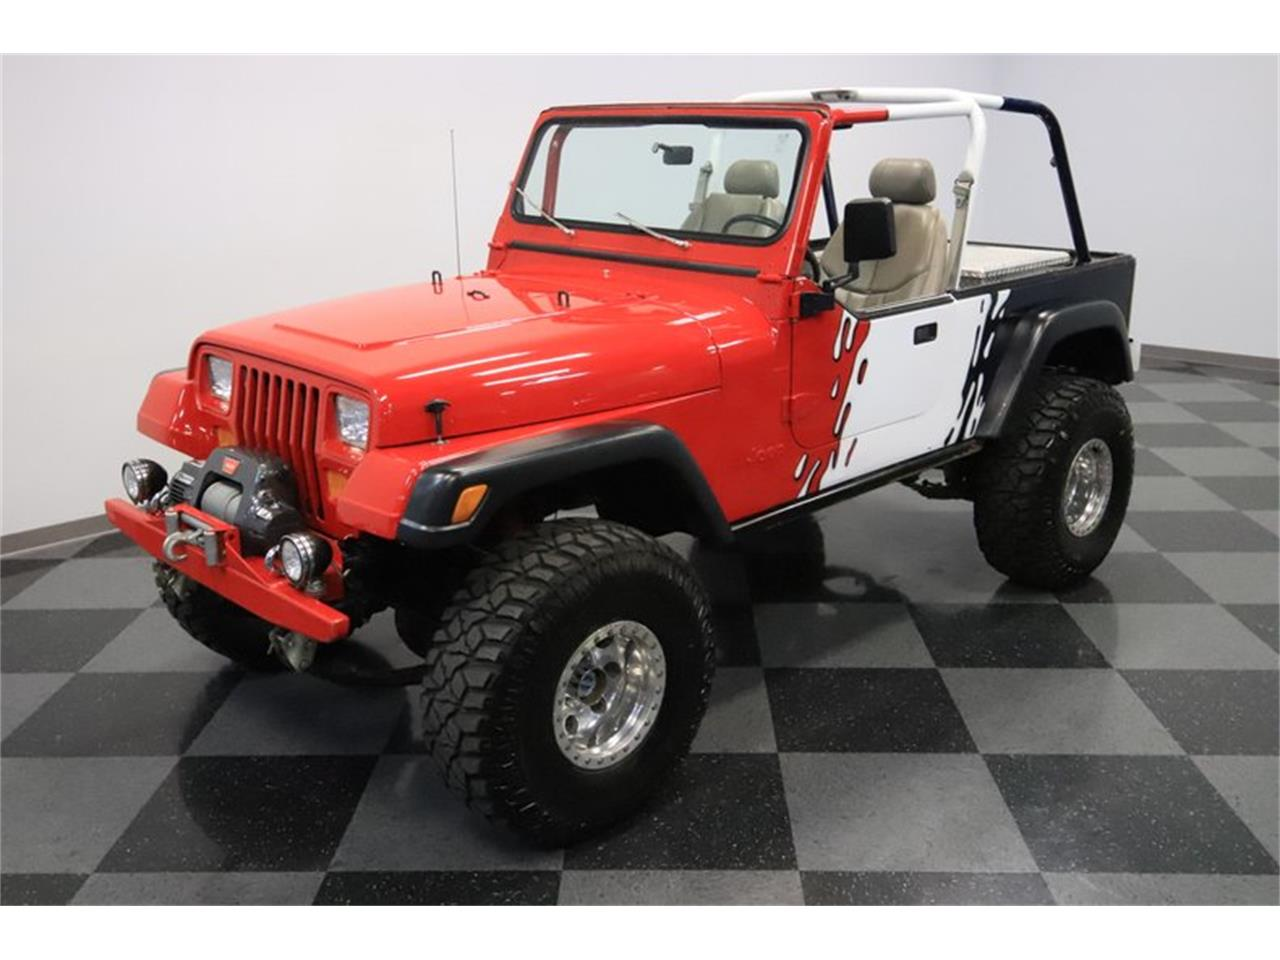 1983 Jeep CJ8 Scrambler for sale in Mesa, AZ – photo 20